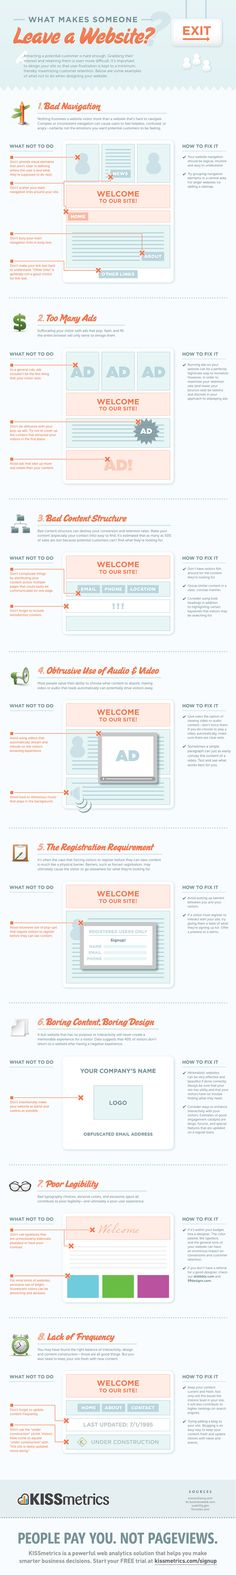 What makes someone LEAVE a website? ...and how to fix it [INFOGRAPHIC]